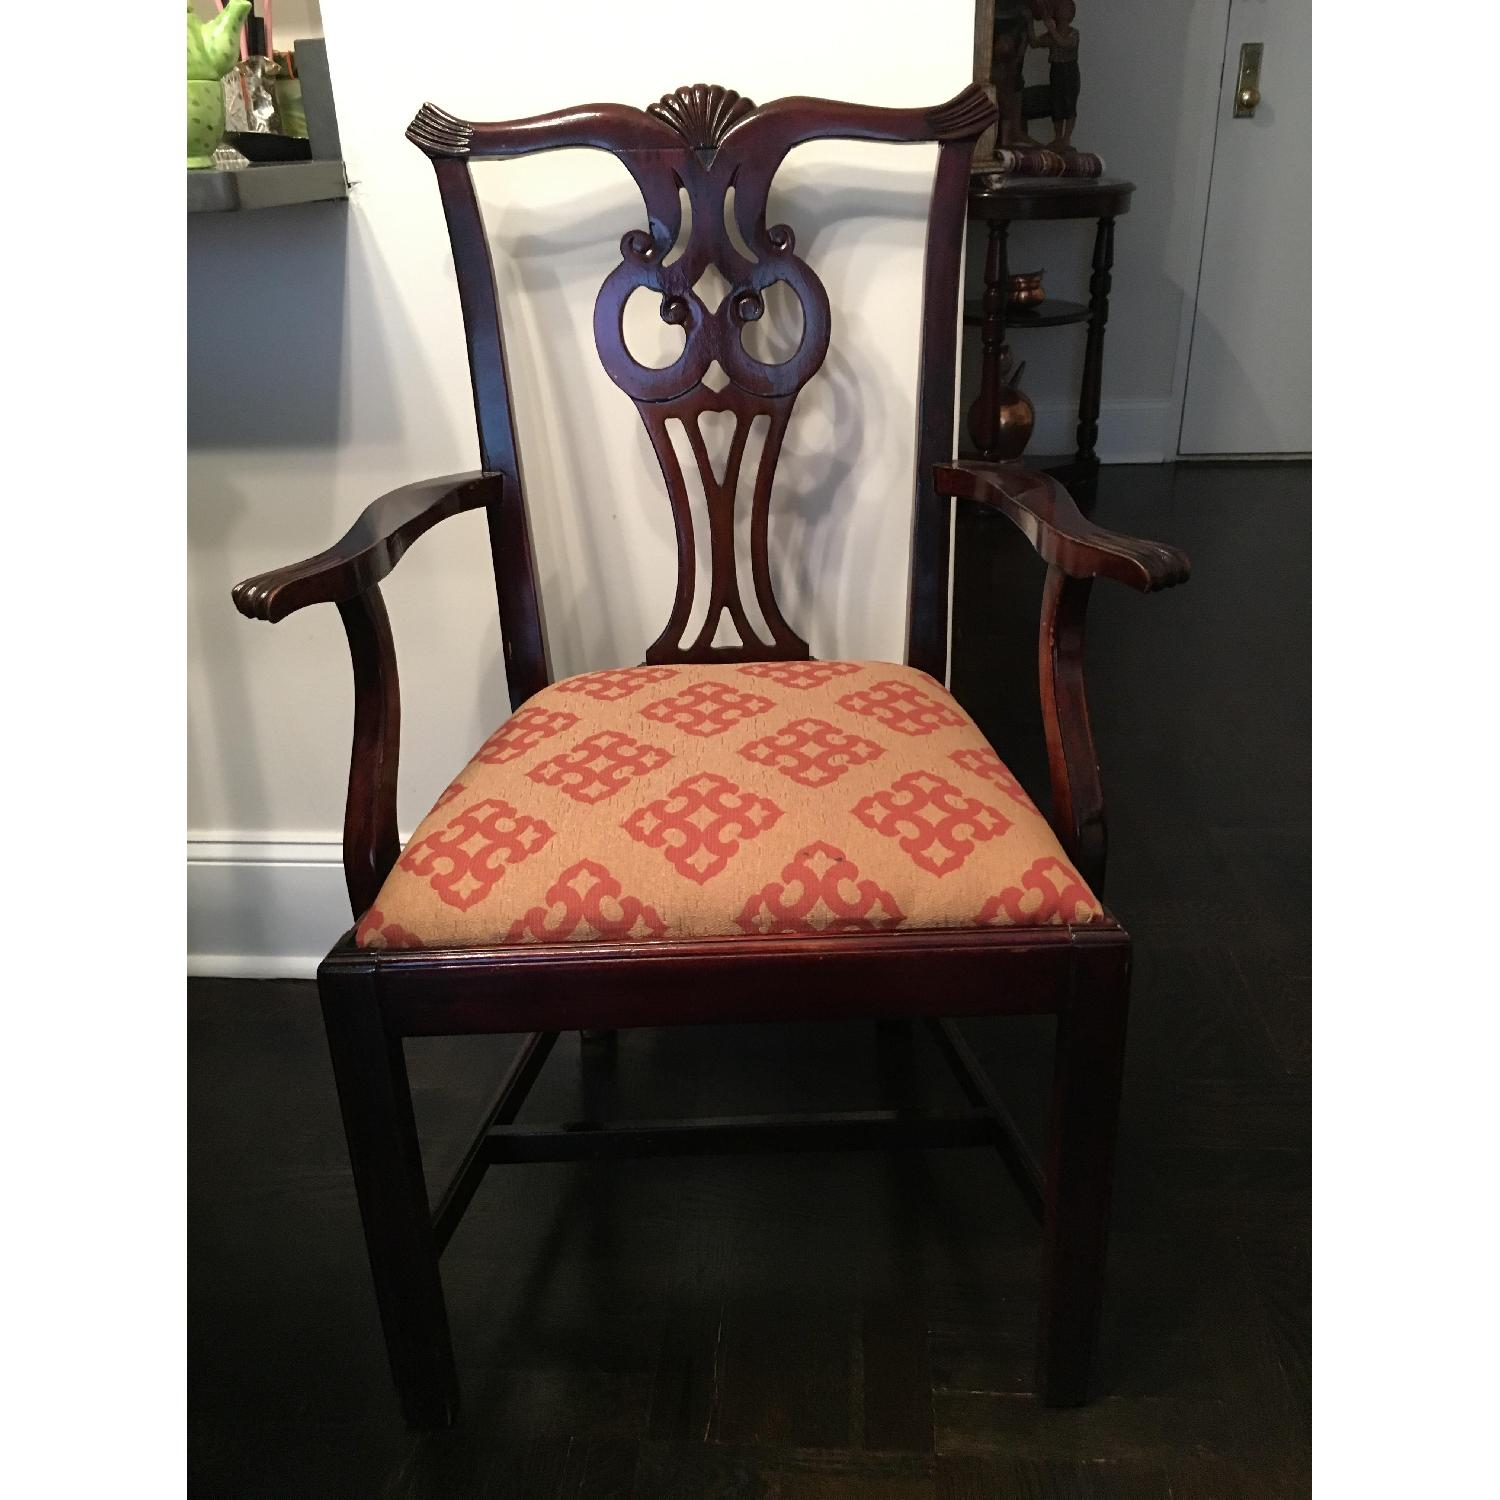 Vintage Chippendale Dining Chairs w/ Arms - image-1